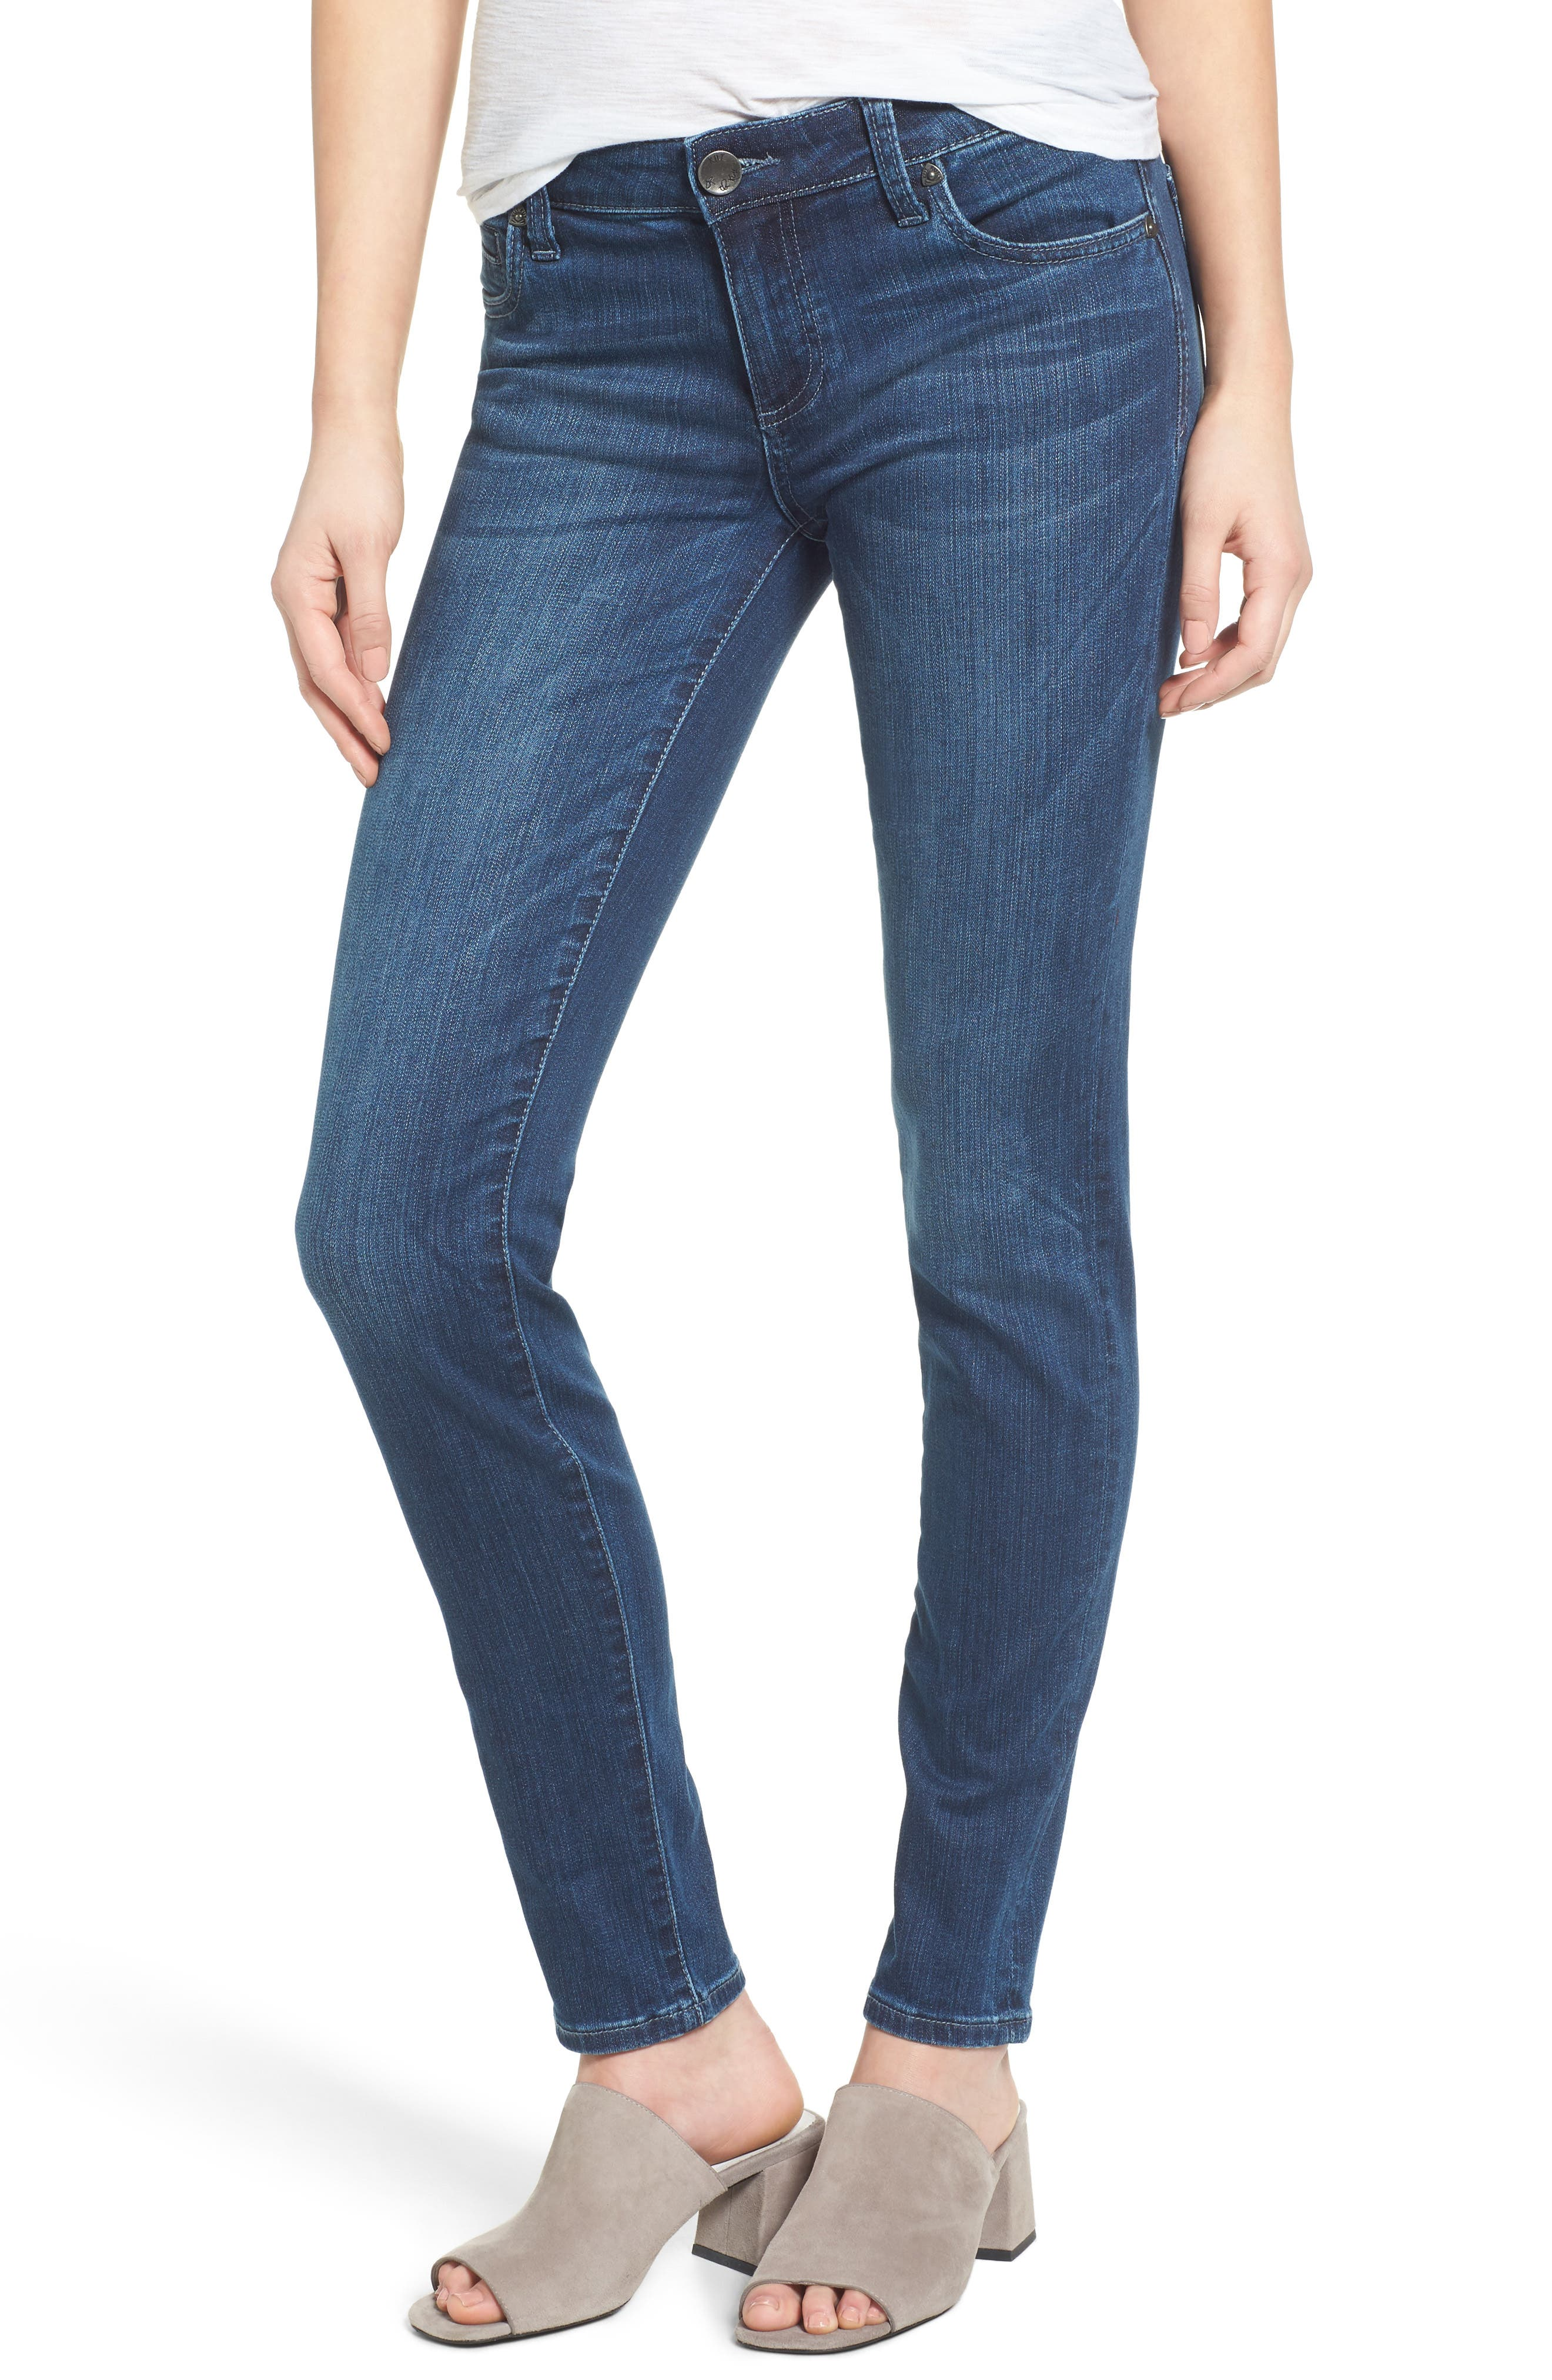 Main Image - KUT from the Kloth Diana Stretch Skinny Jeans (Moderation) (Regular & Petite)